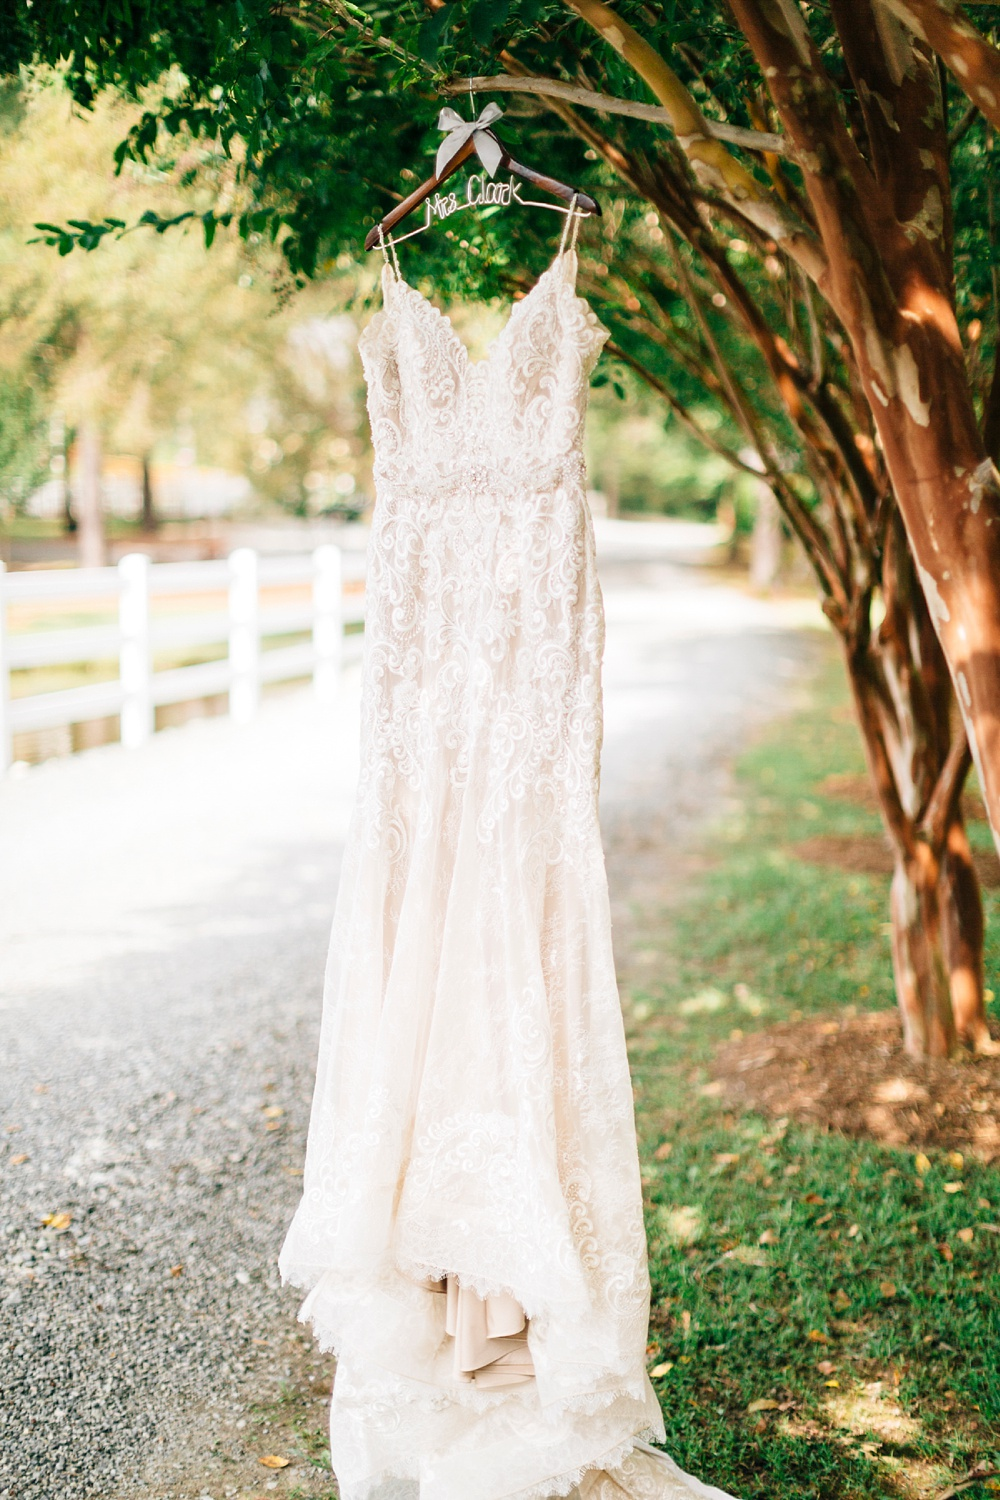 lace wedding dress hangs from a crepe myrtle lining a country road